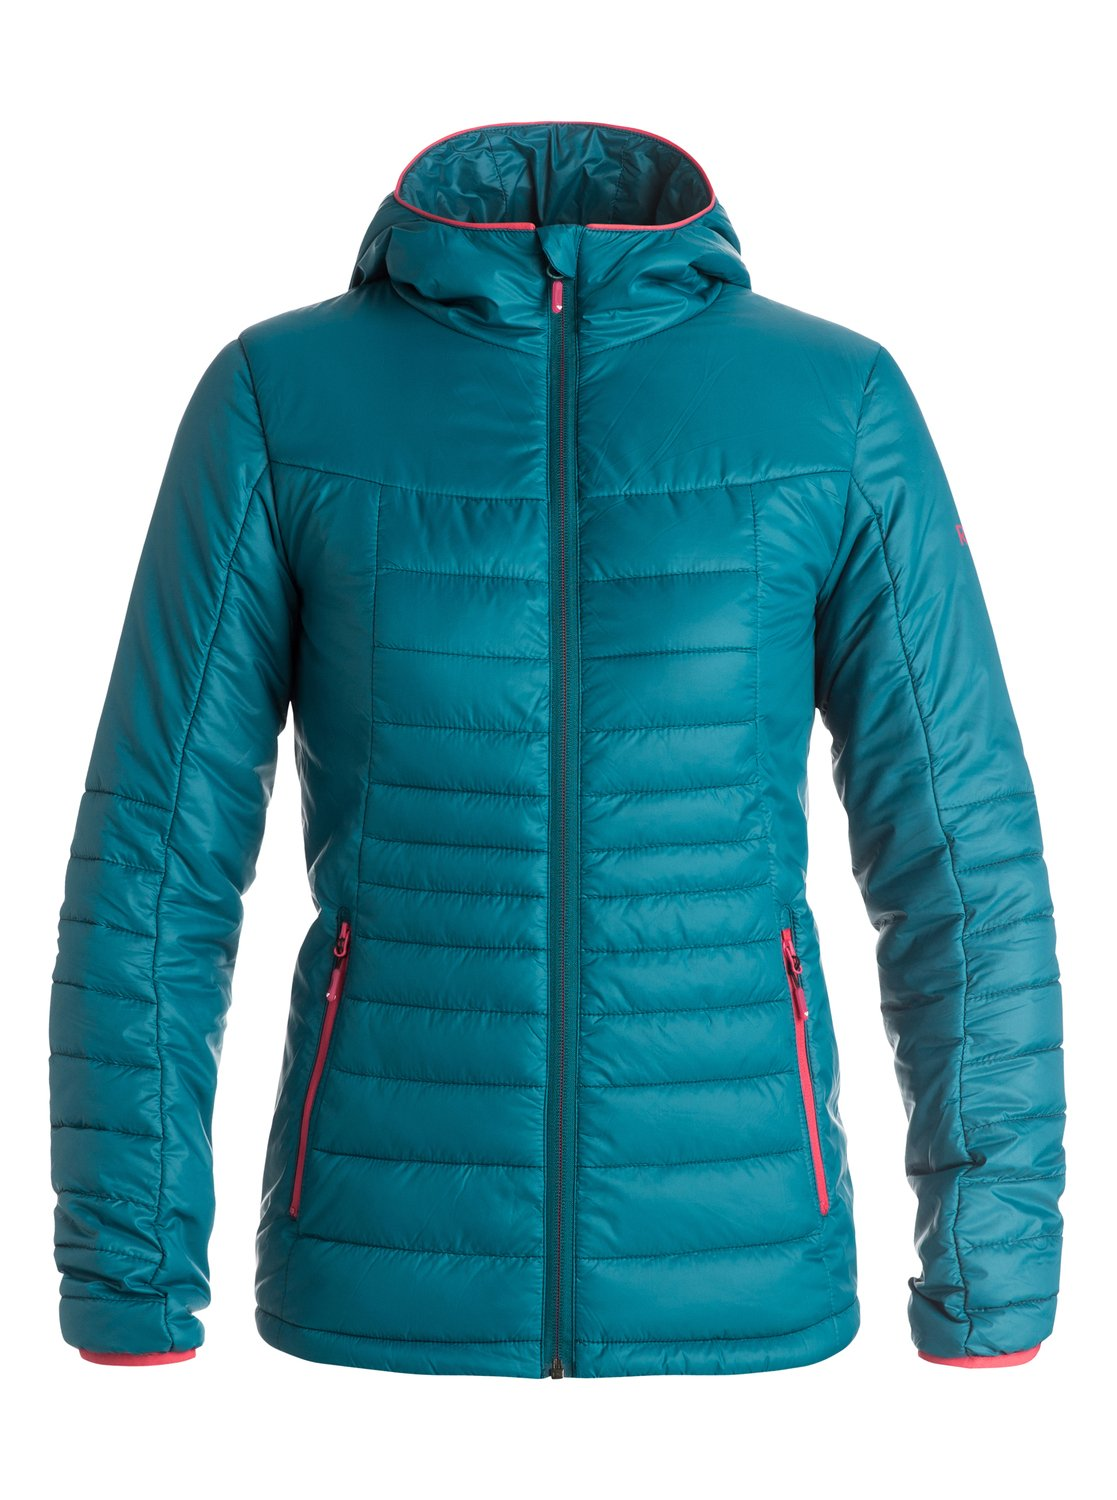 Куртка женская HighlightThe Highlight Insulator jacket for women strategically uses compressible high loft insulation, for absolute insurance in all conditions without sacrificing manoeuvrability. The PrimaLoft® Gold Insulation Luxe quilting looks like down, feels like down and performs like down with the superior wet-weather performance of synthetic fibres. Crafted with DWR ROXY DryFlight® treated nylon ripstop its great at keeping you protected for longer. Ideal for layering or for a spot of sunny spring shedding.<br>